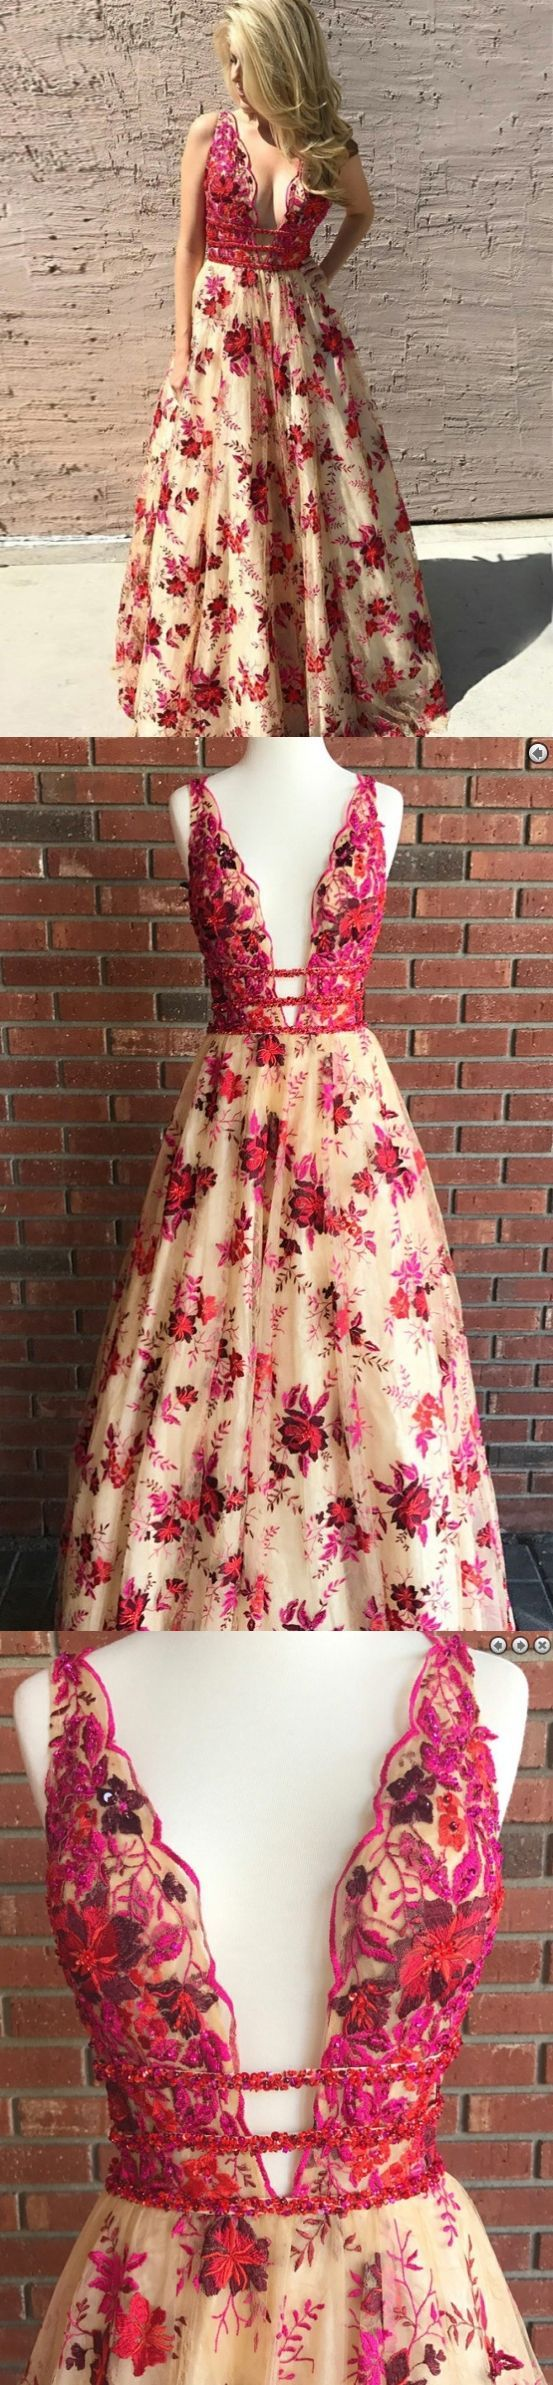 Lace prom dresses vneck a line floorlength red floral sexy long